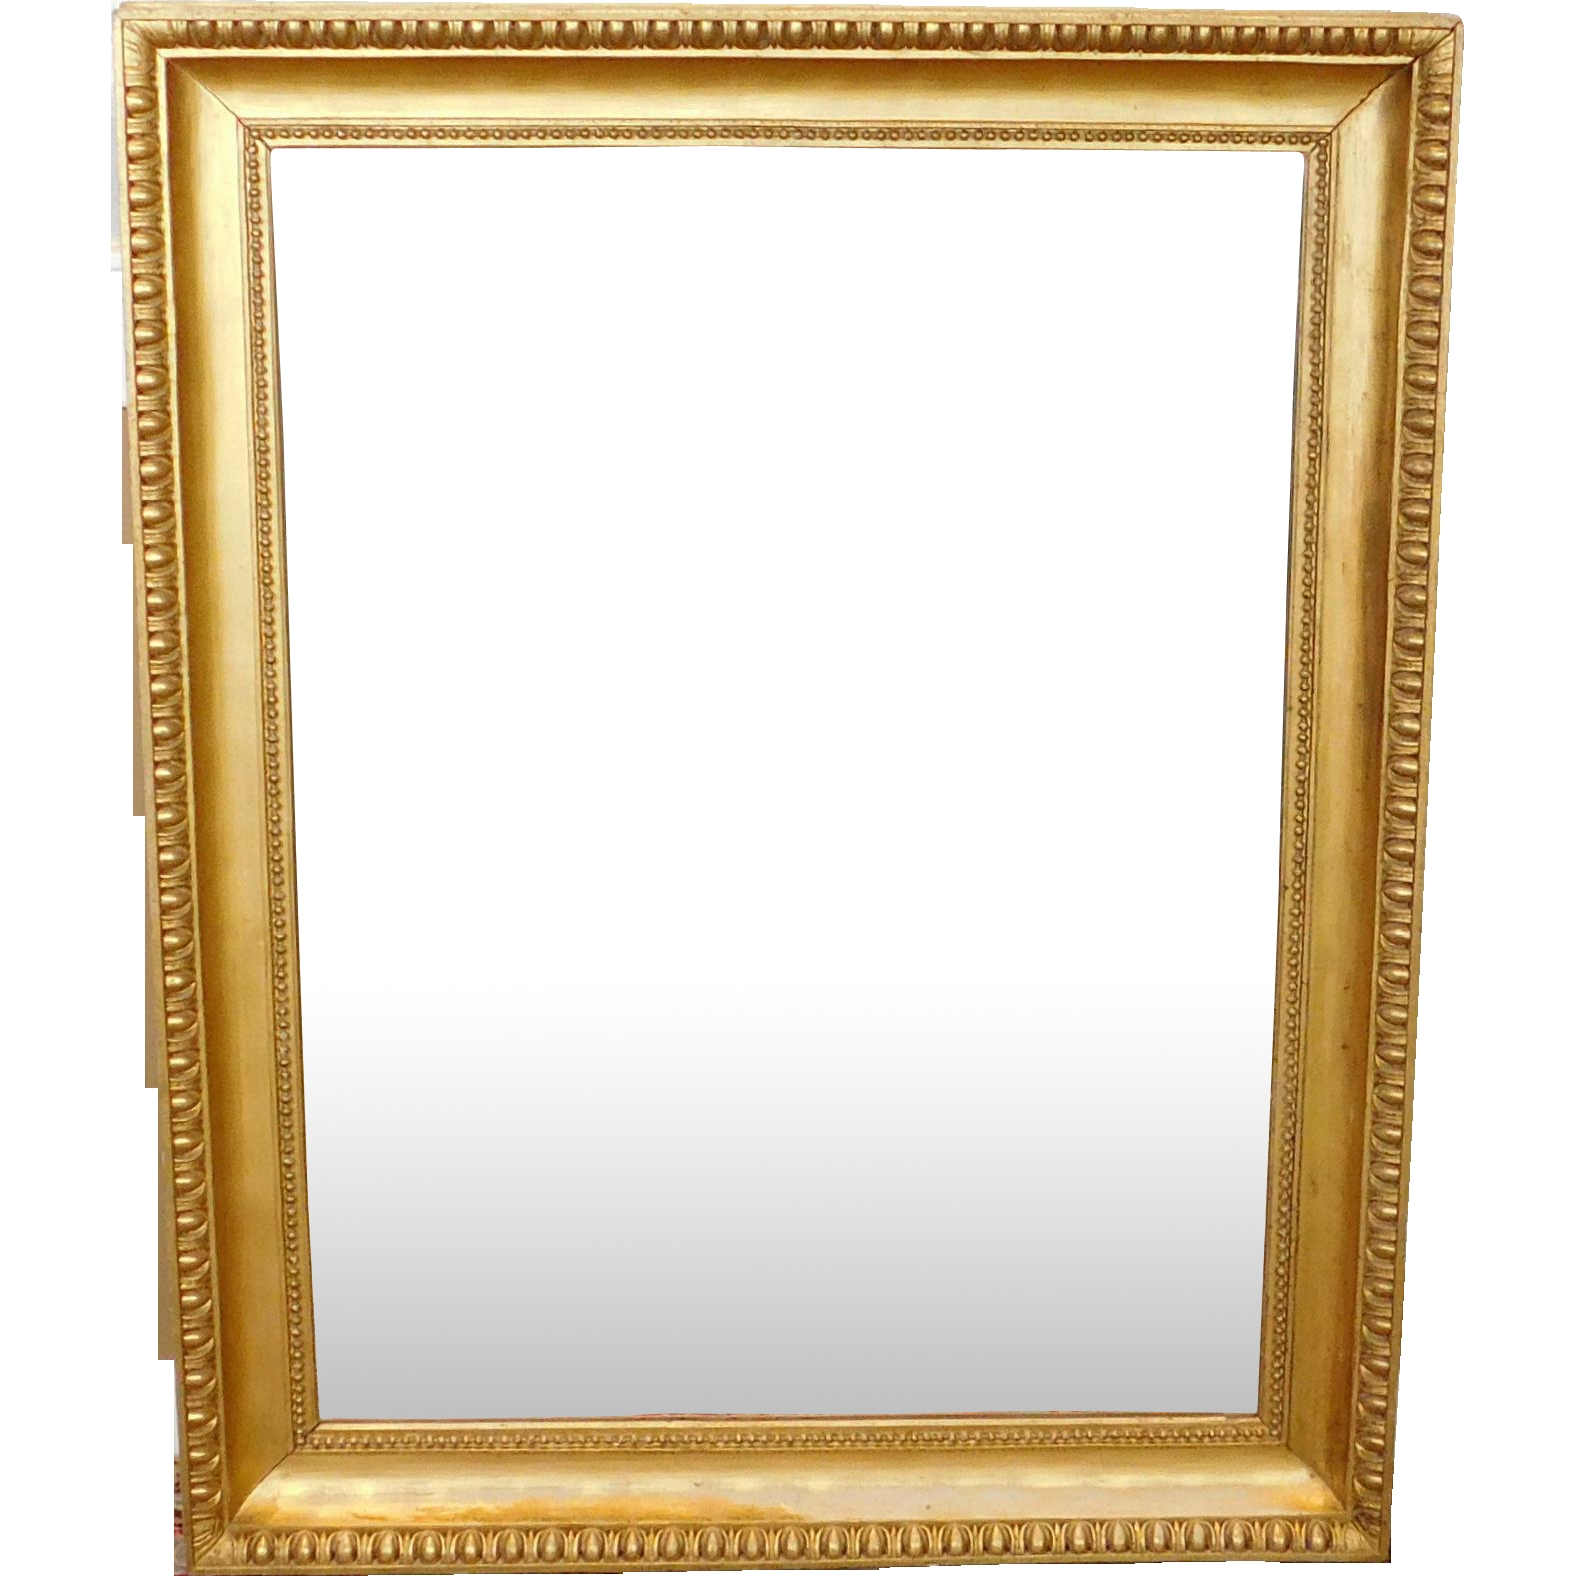 Fantastic Regency Style Gilded Frame Rectangular Hanging Wall Pertaining To Gilded Mirrors For Sale (Image 9 of 15)